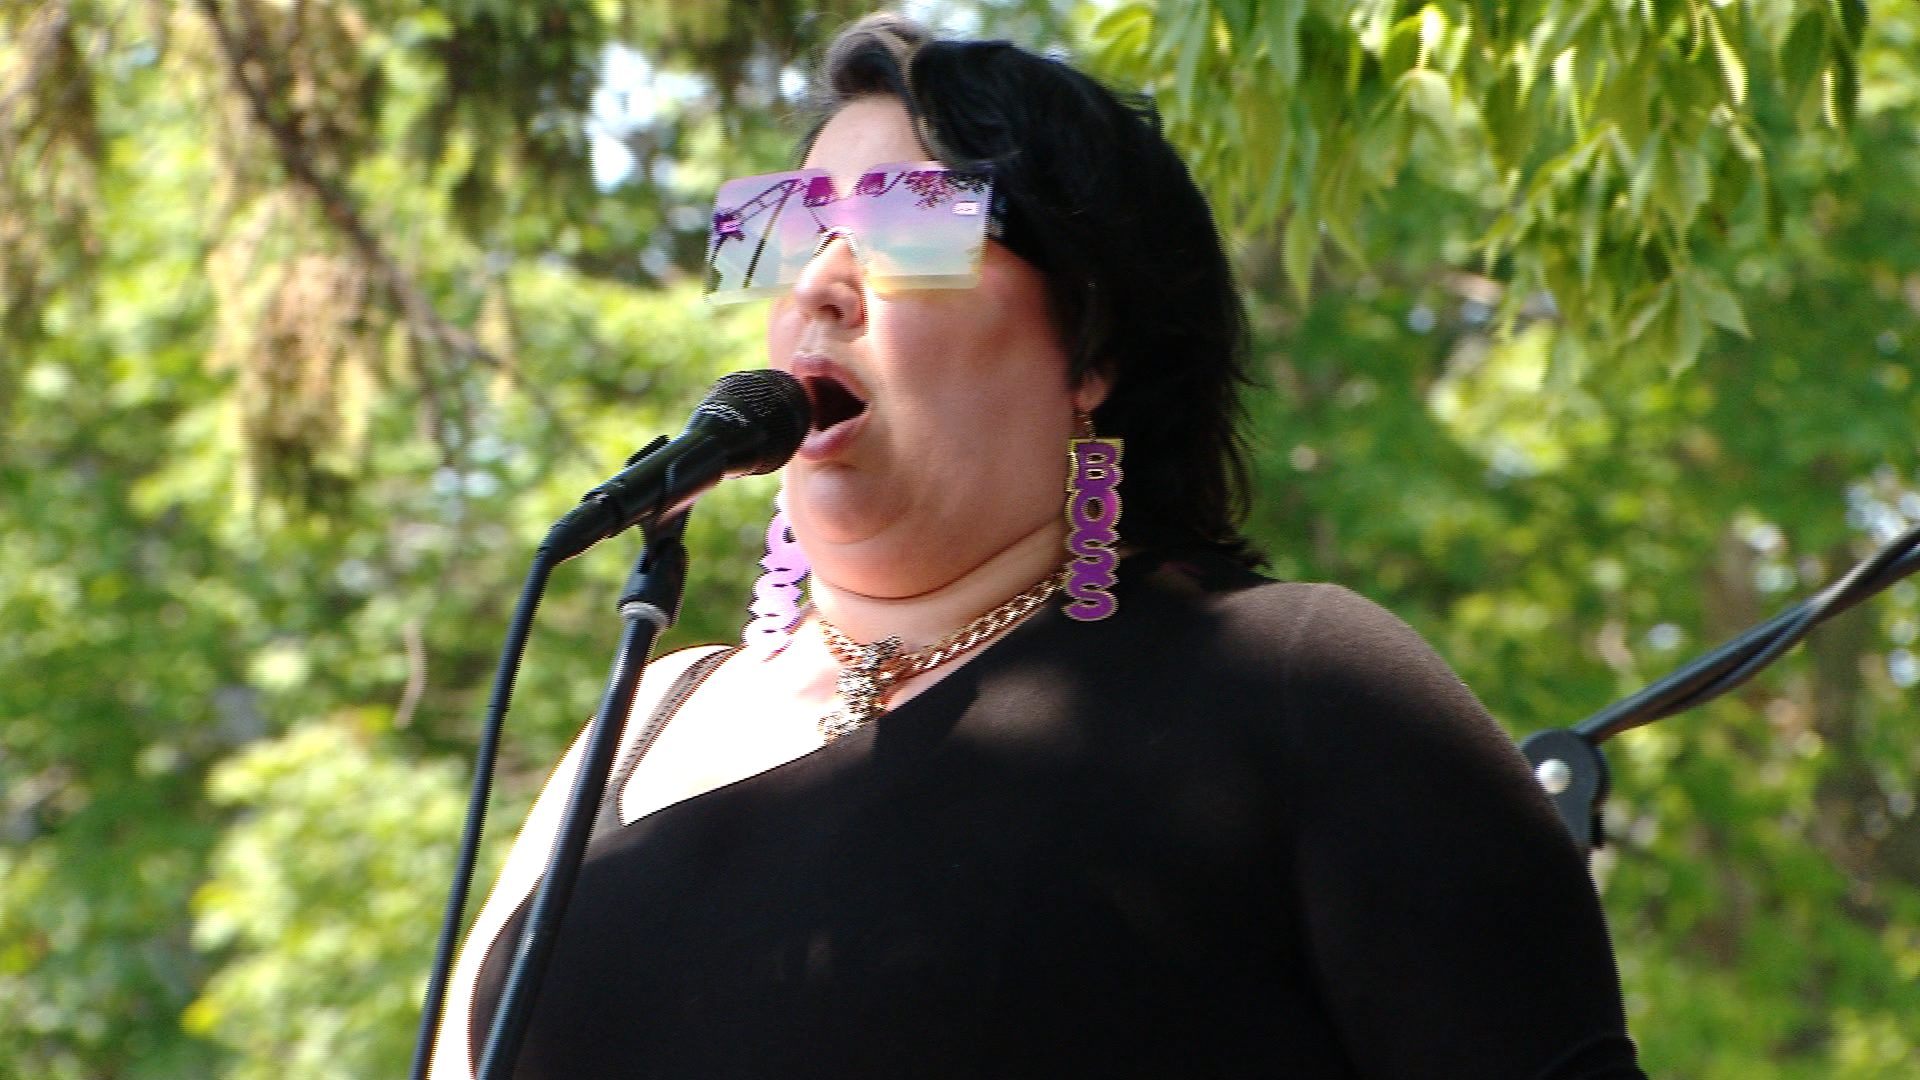 Artist Sarah Potenza performs at the Fox River House. August 4, 2019. (WLUK/Chris Schattl)